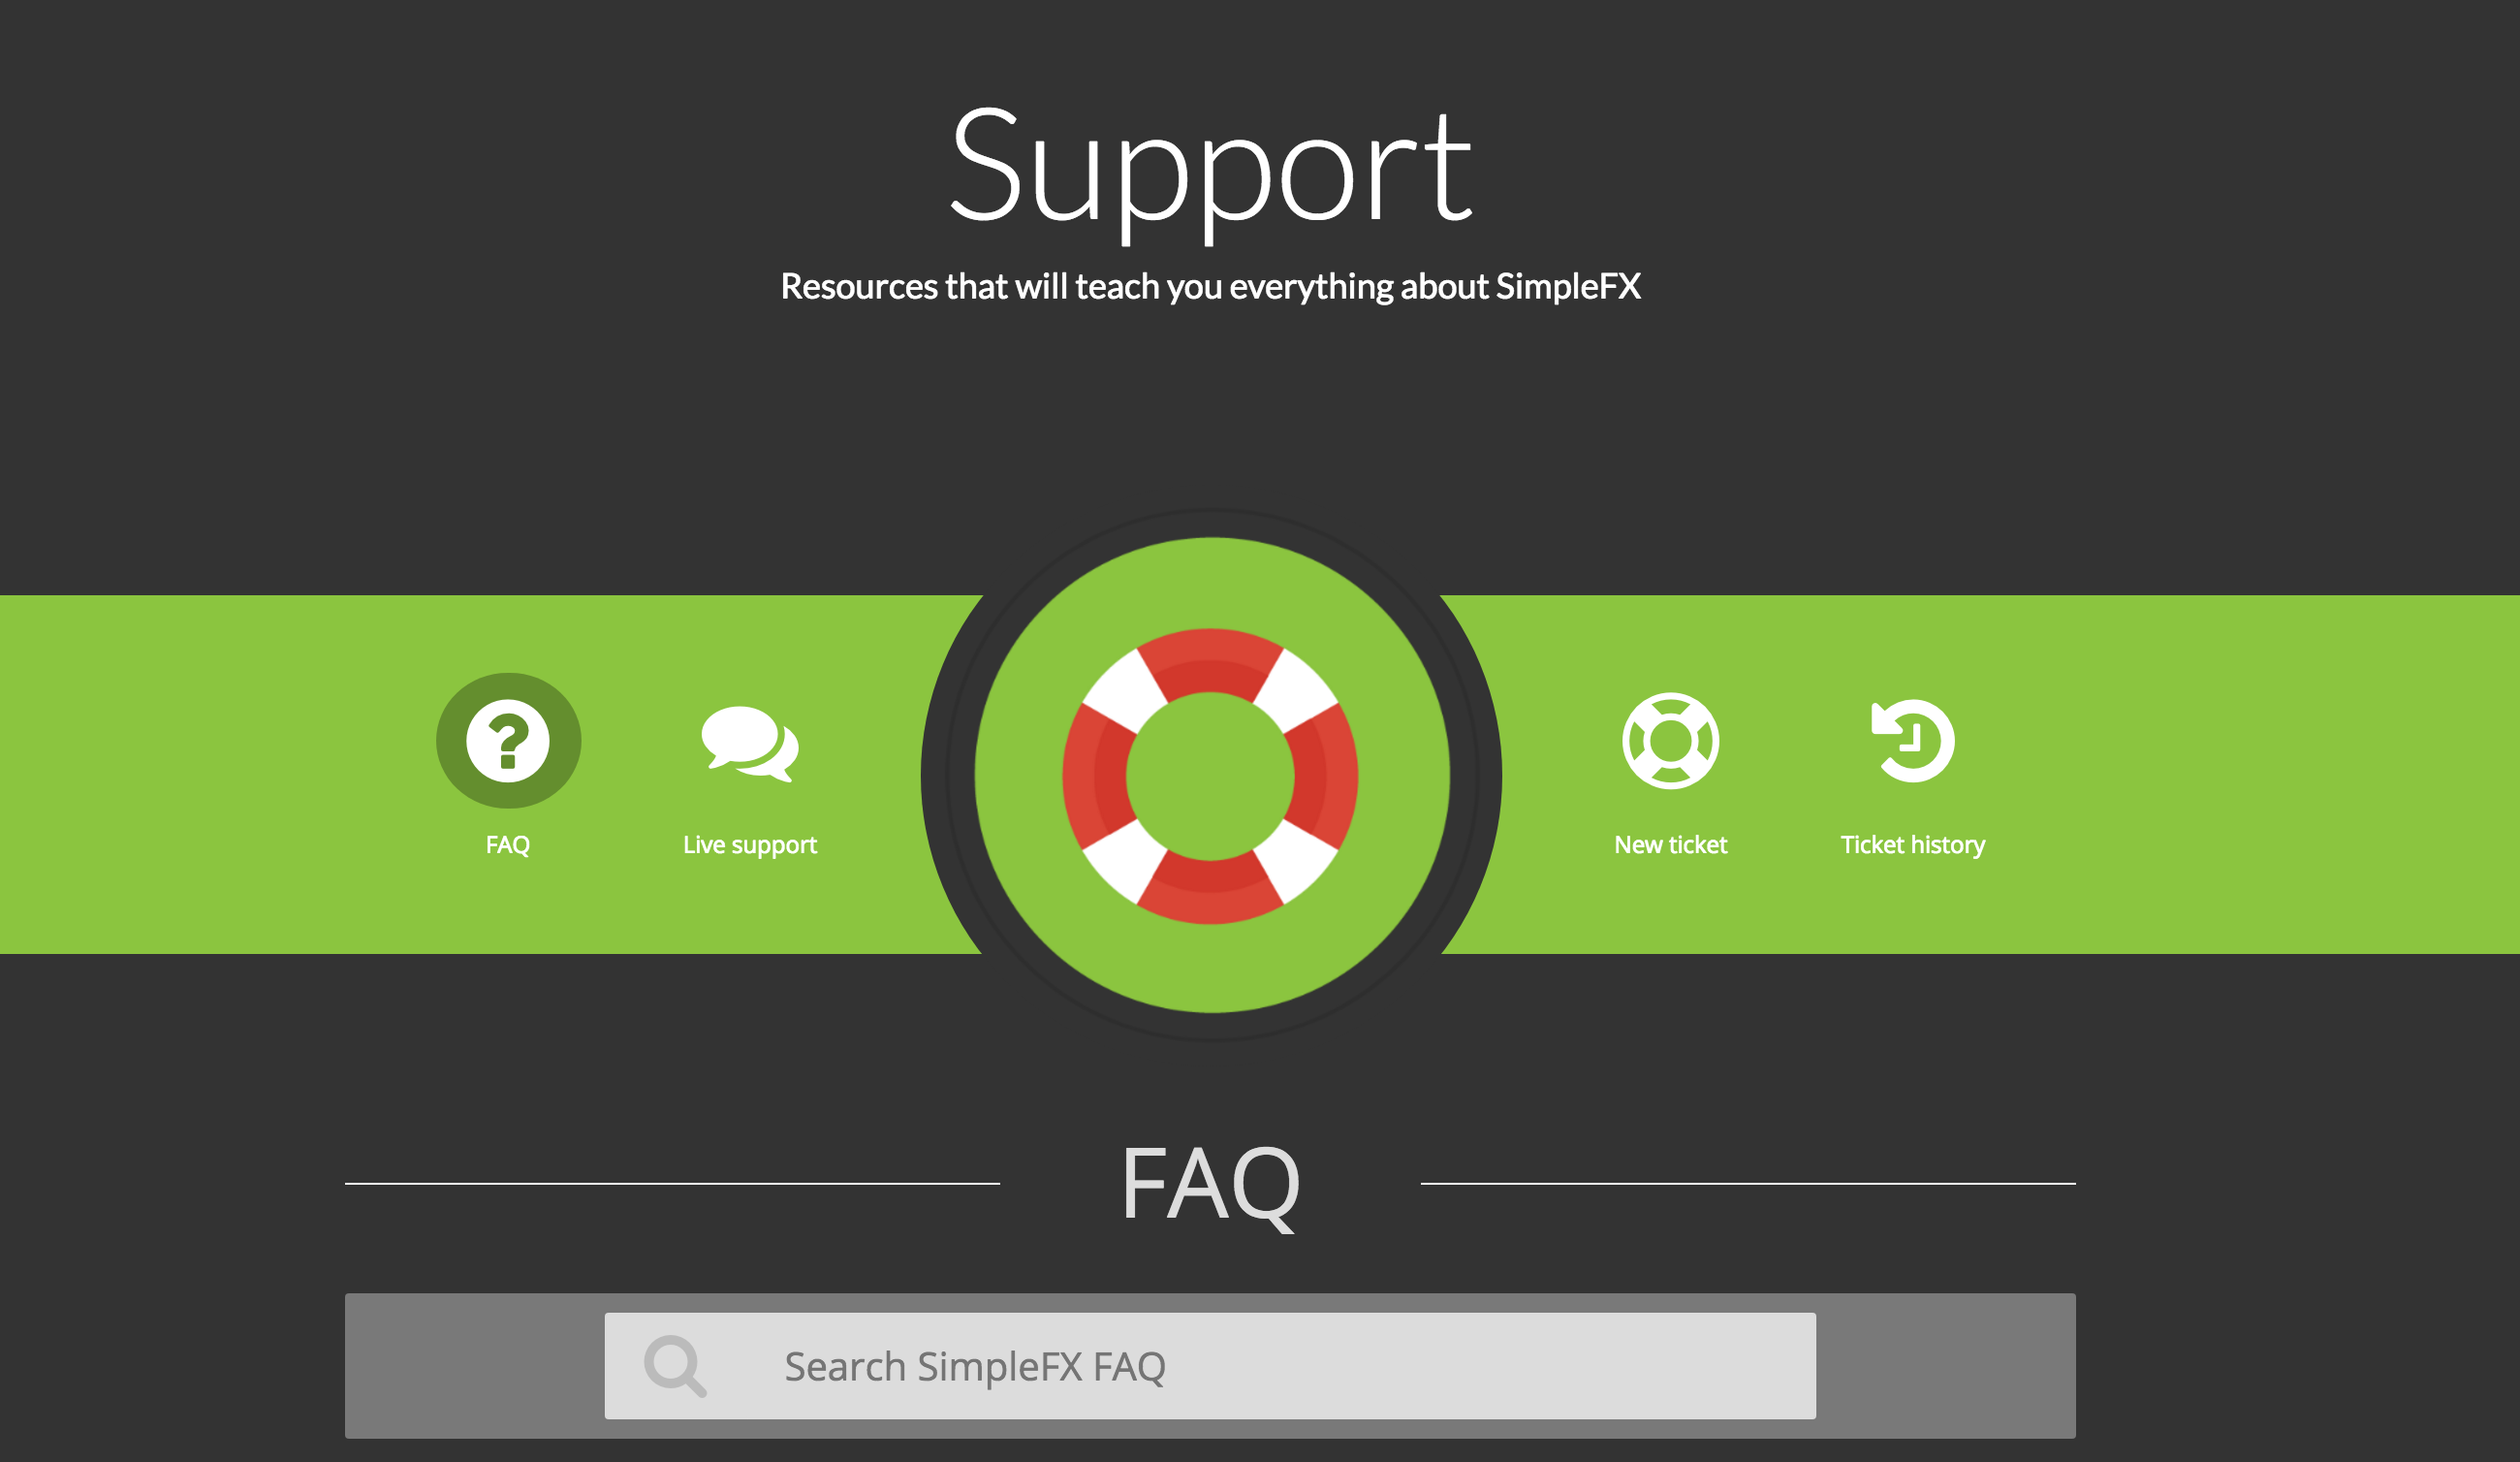 SimpleFX Support